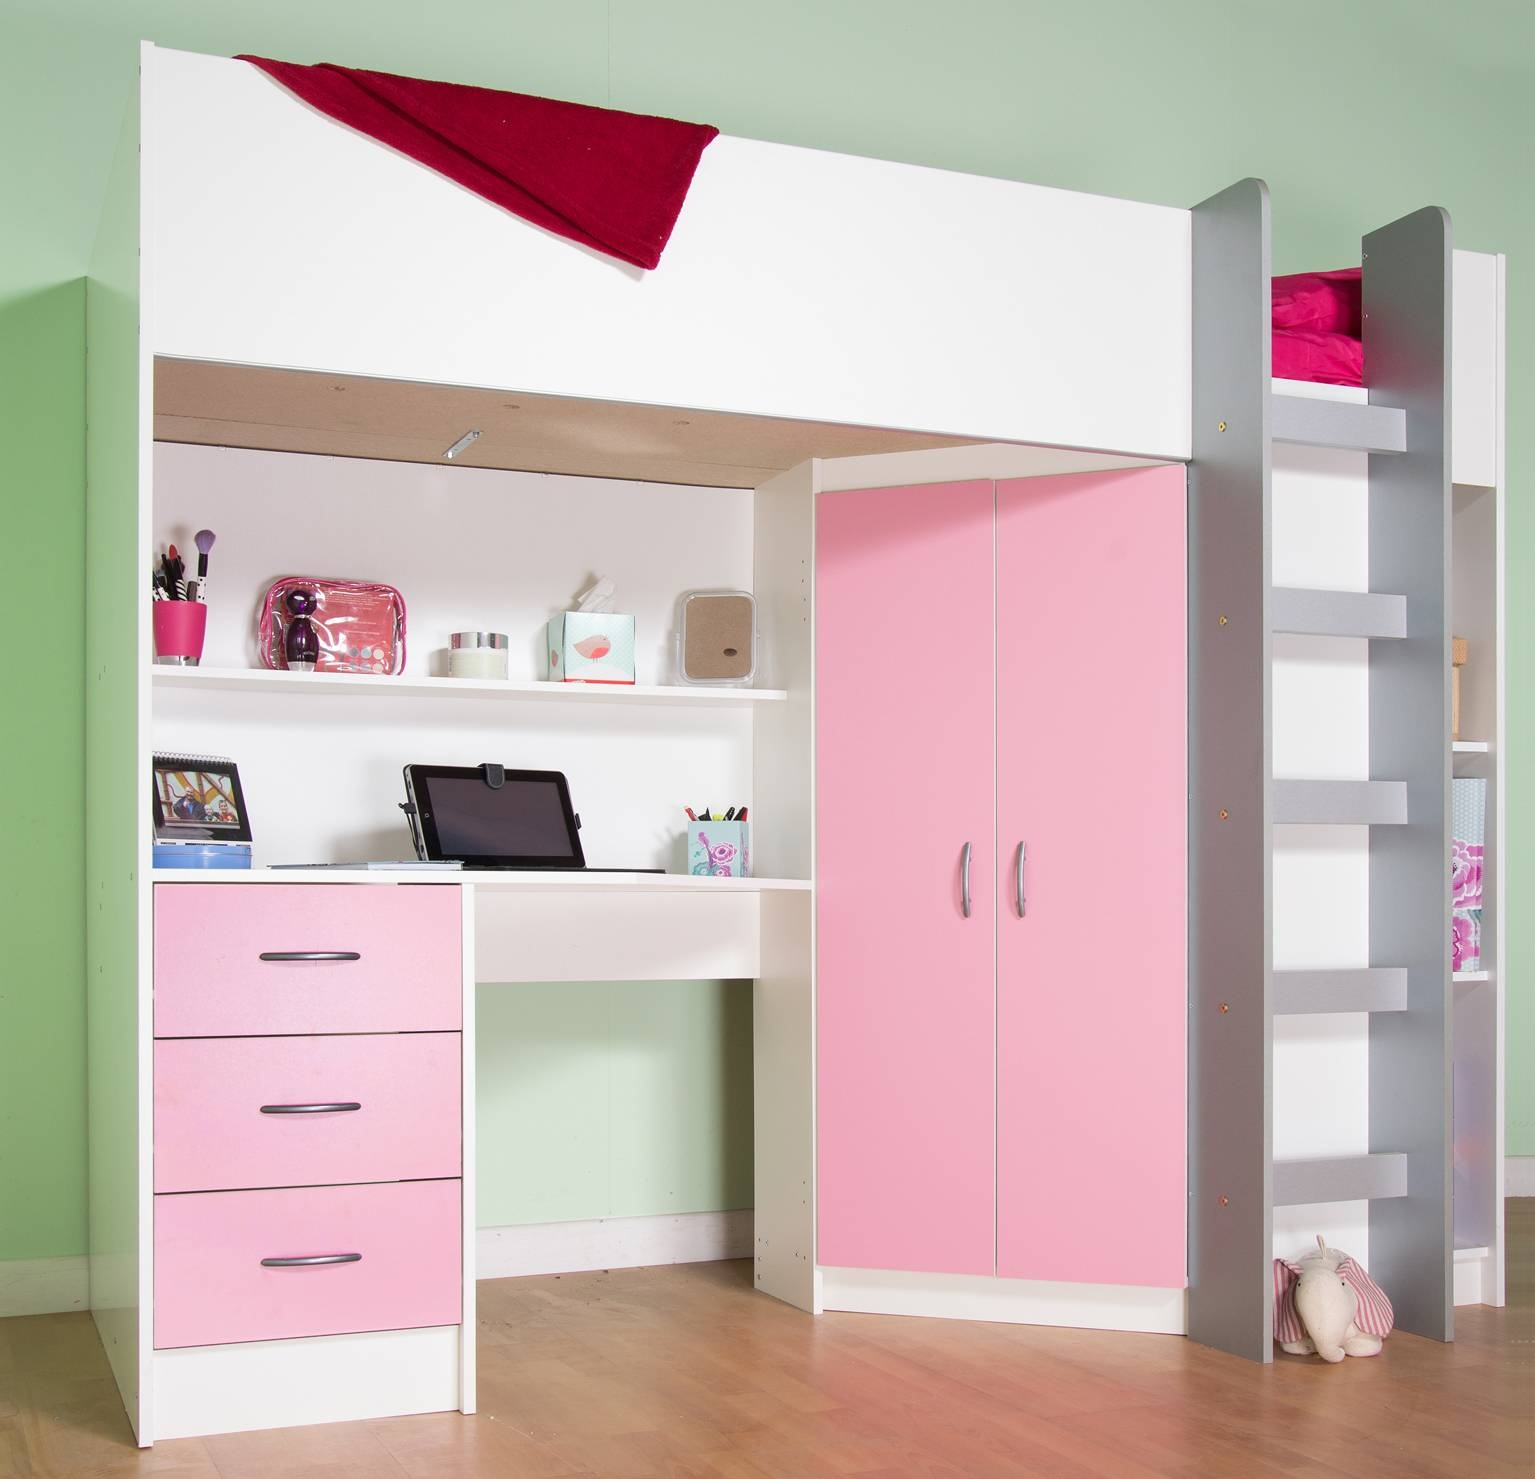 Cheap Cabin Beds With Desk   Kts-S within High Sleeper With Sofa and Desk (Image 2 of 25)